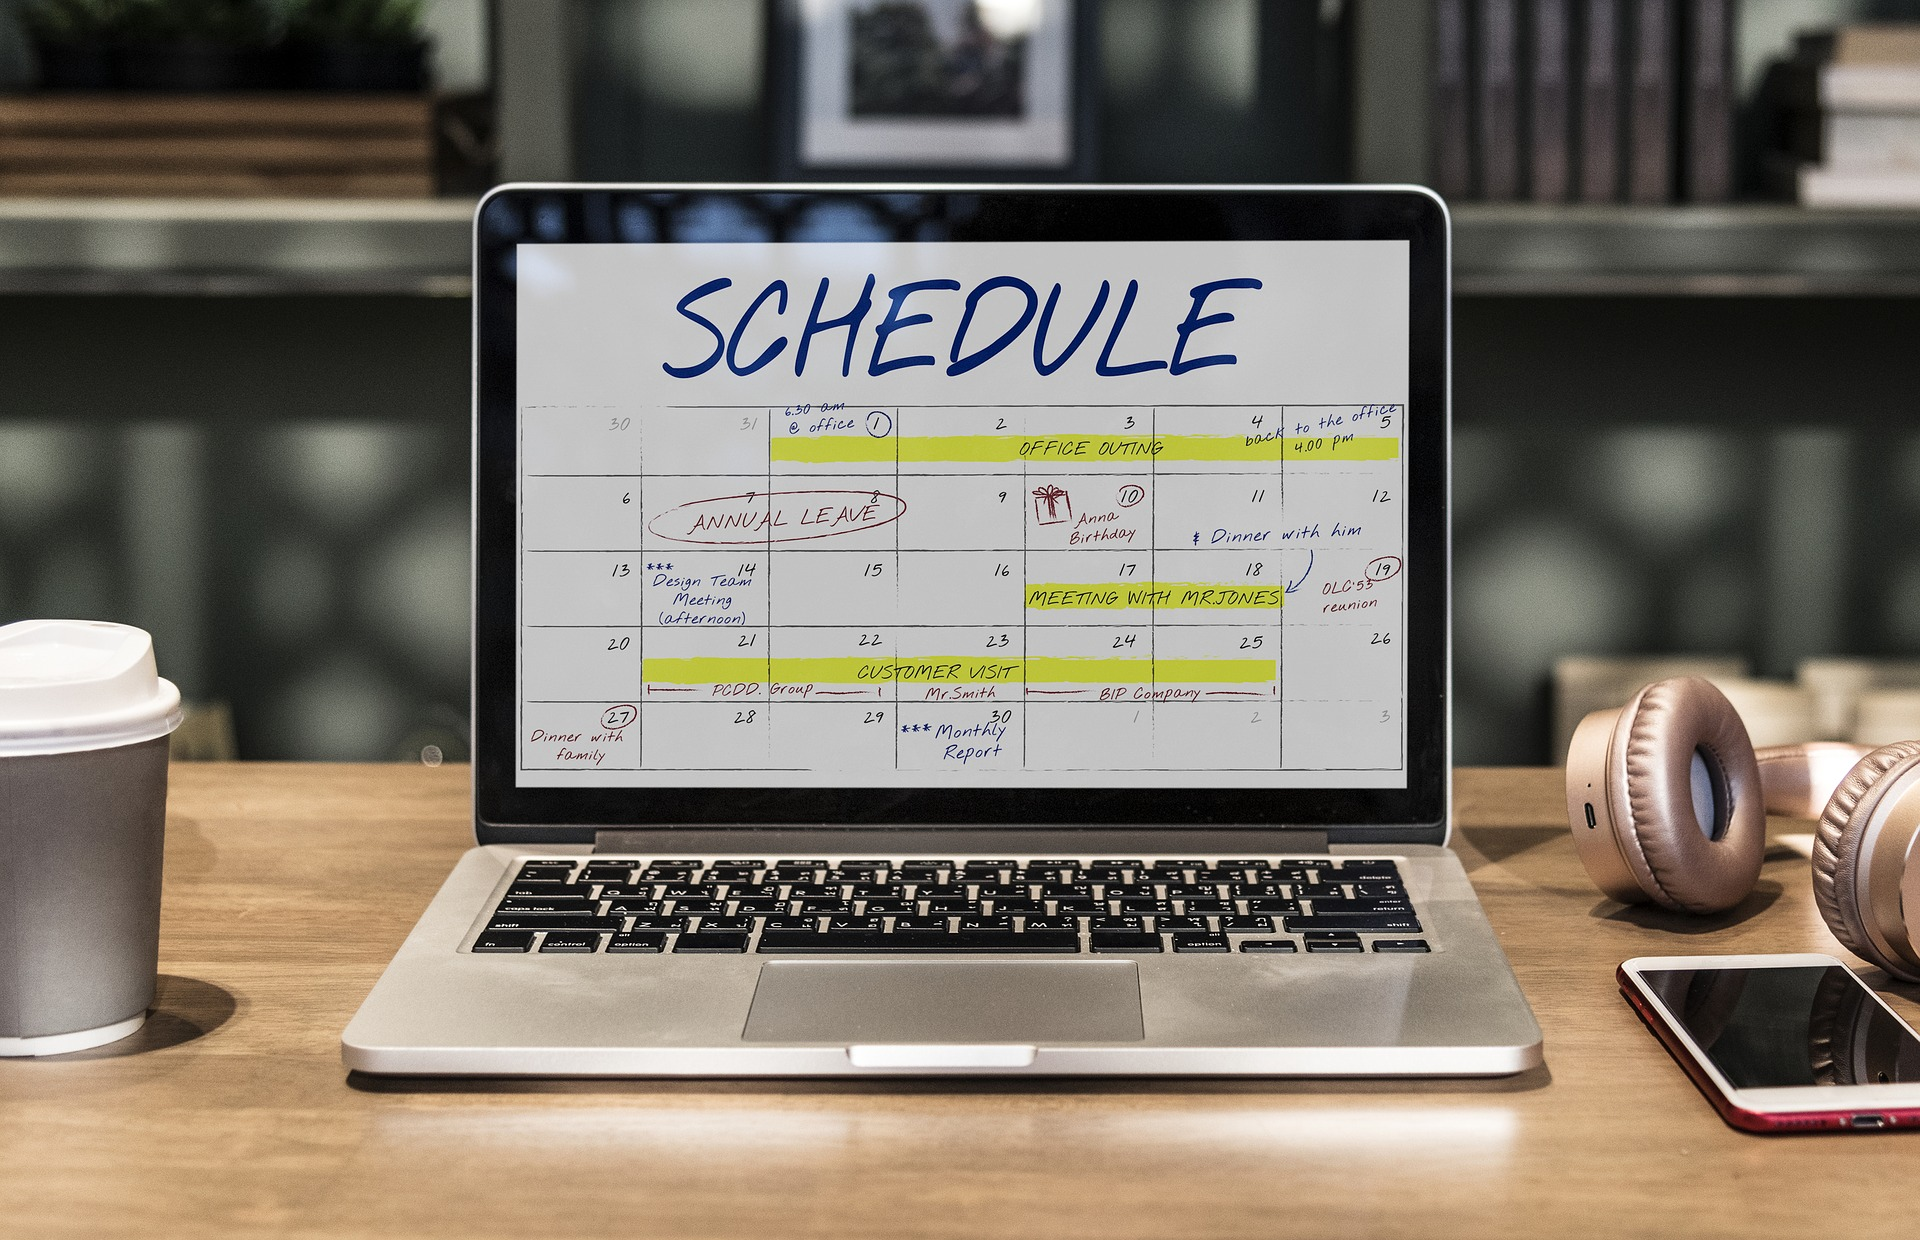 Let The Good Sheppard manage your schedule and save you time and money.